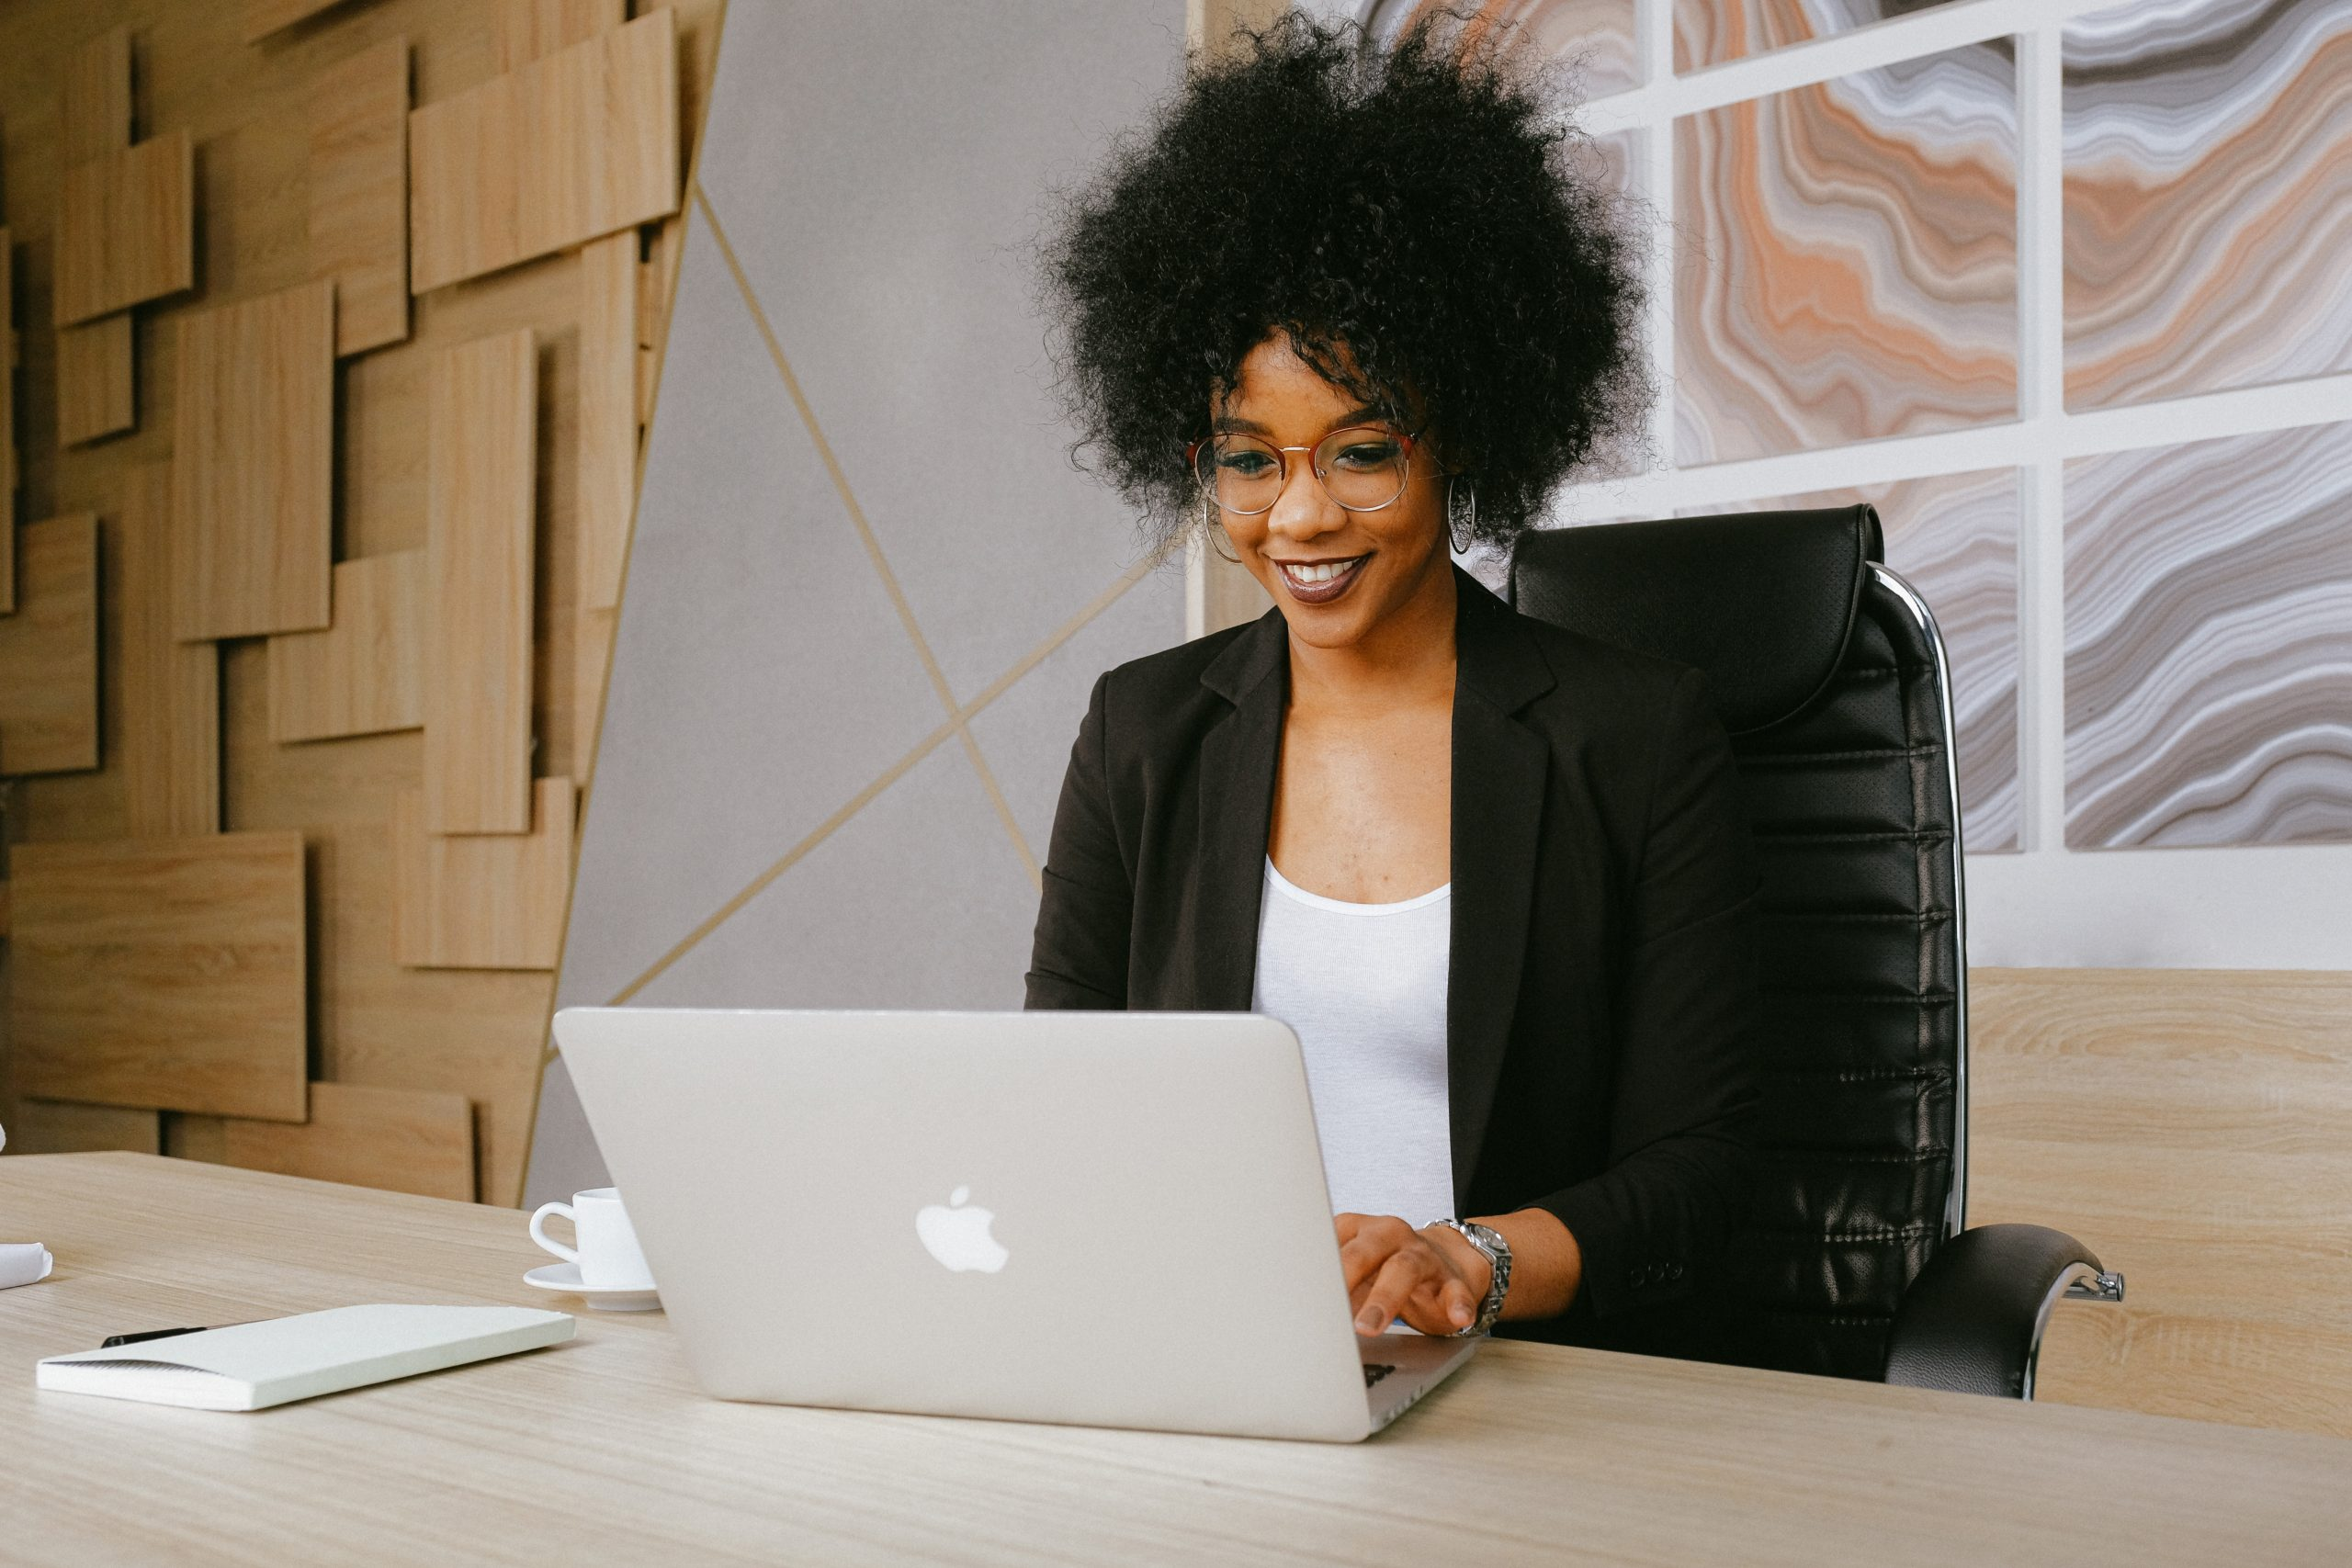 A Black female professional sits at a desk with a laptop computer